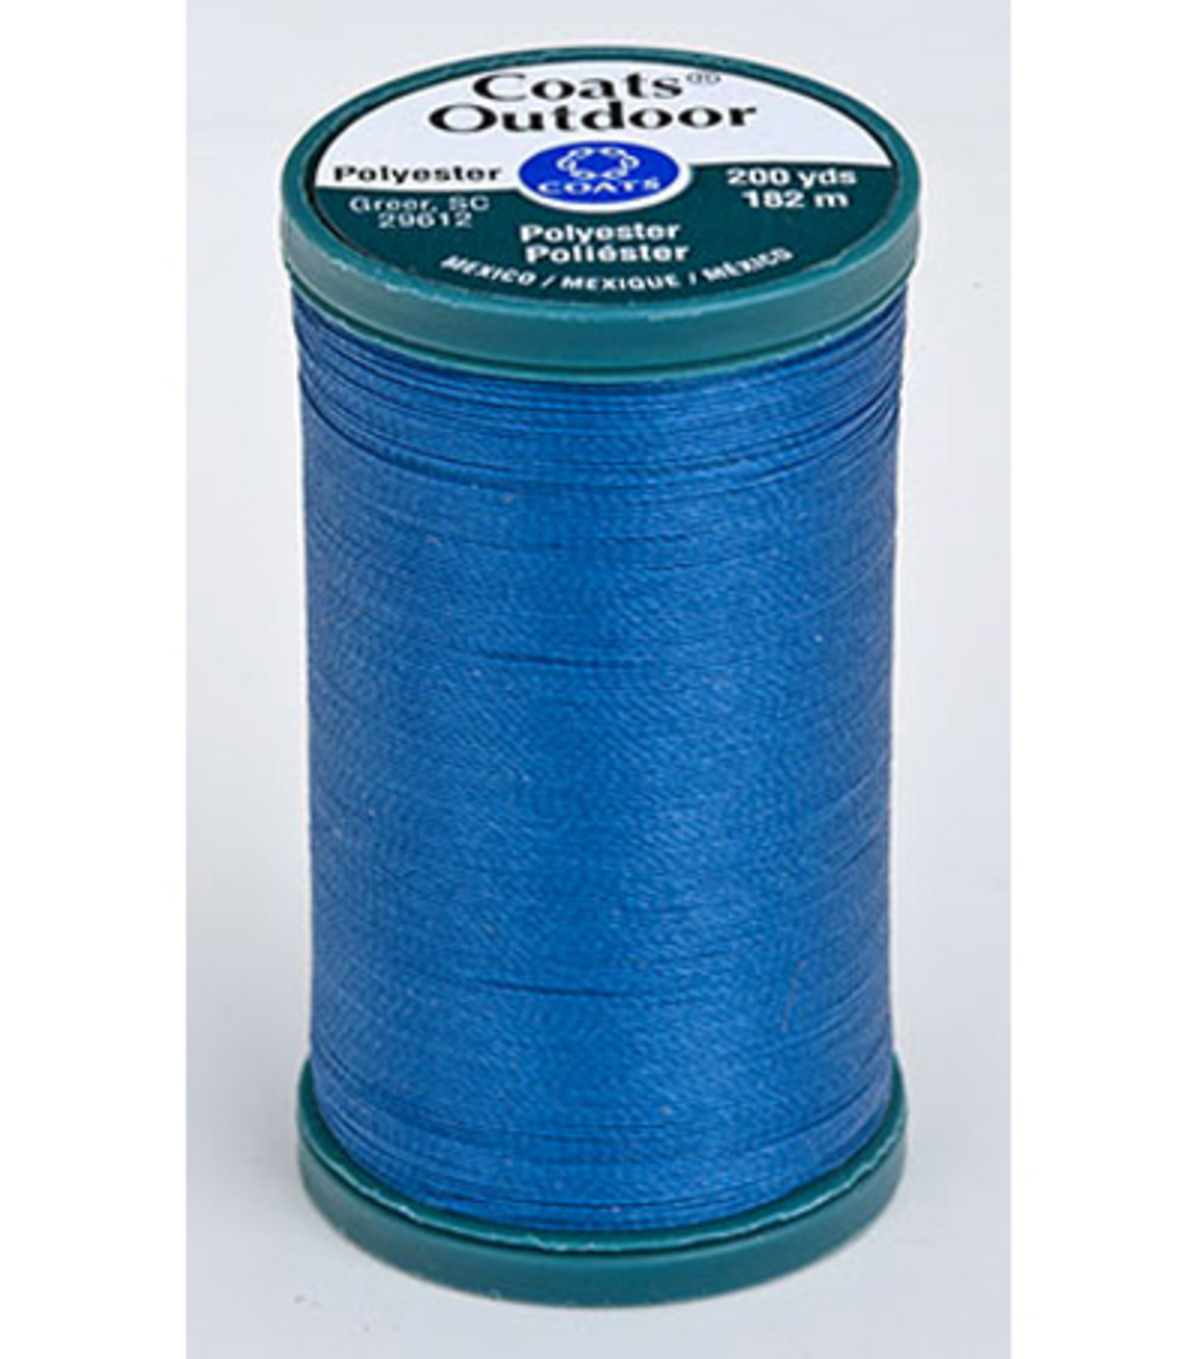 Coats & Clark Outdoor 200yd Thread, Coats Outdoor 200yd Monaco Blu